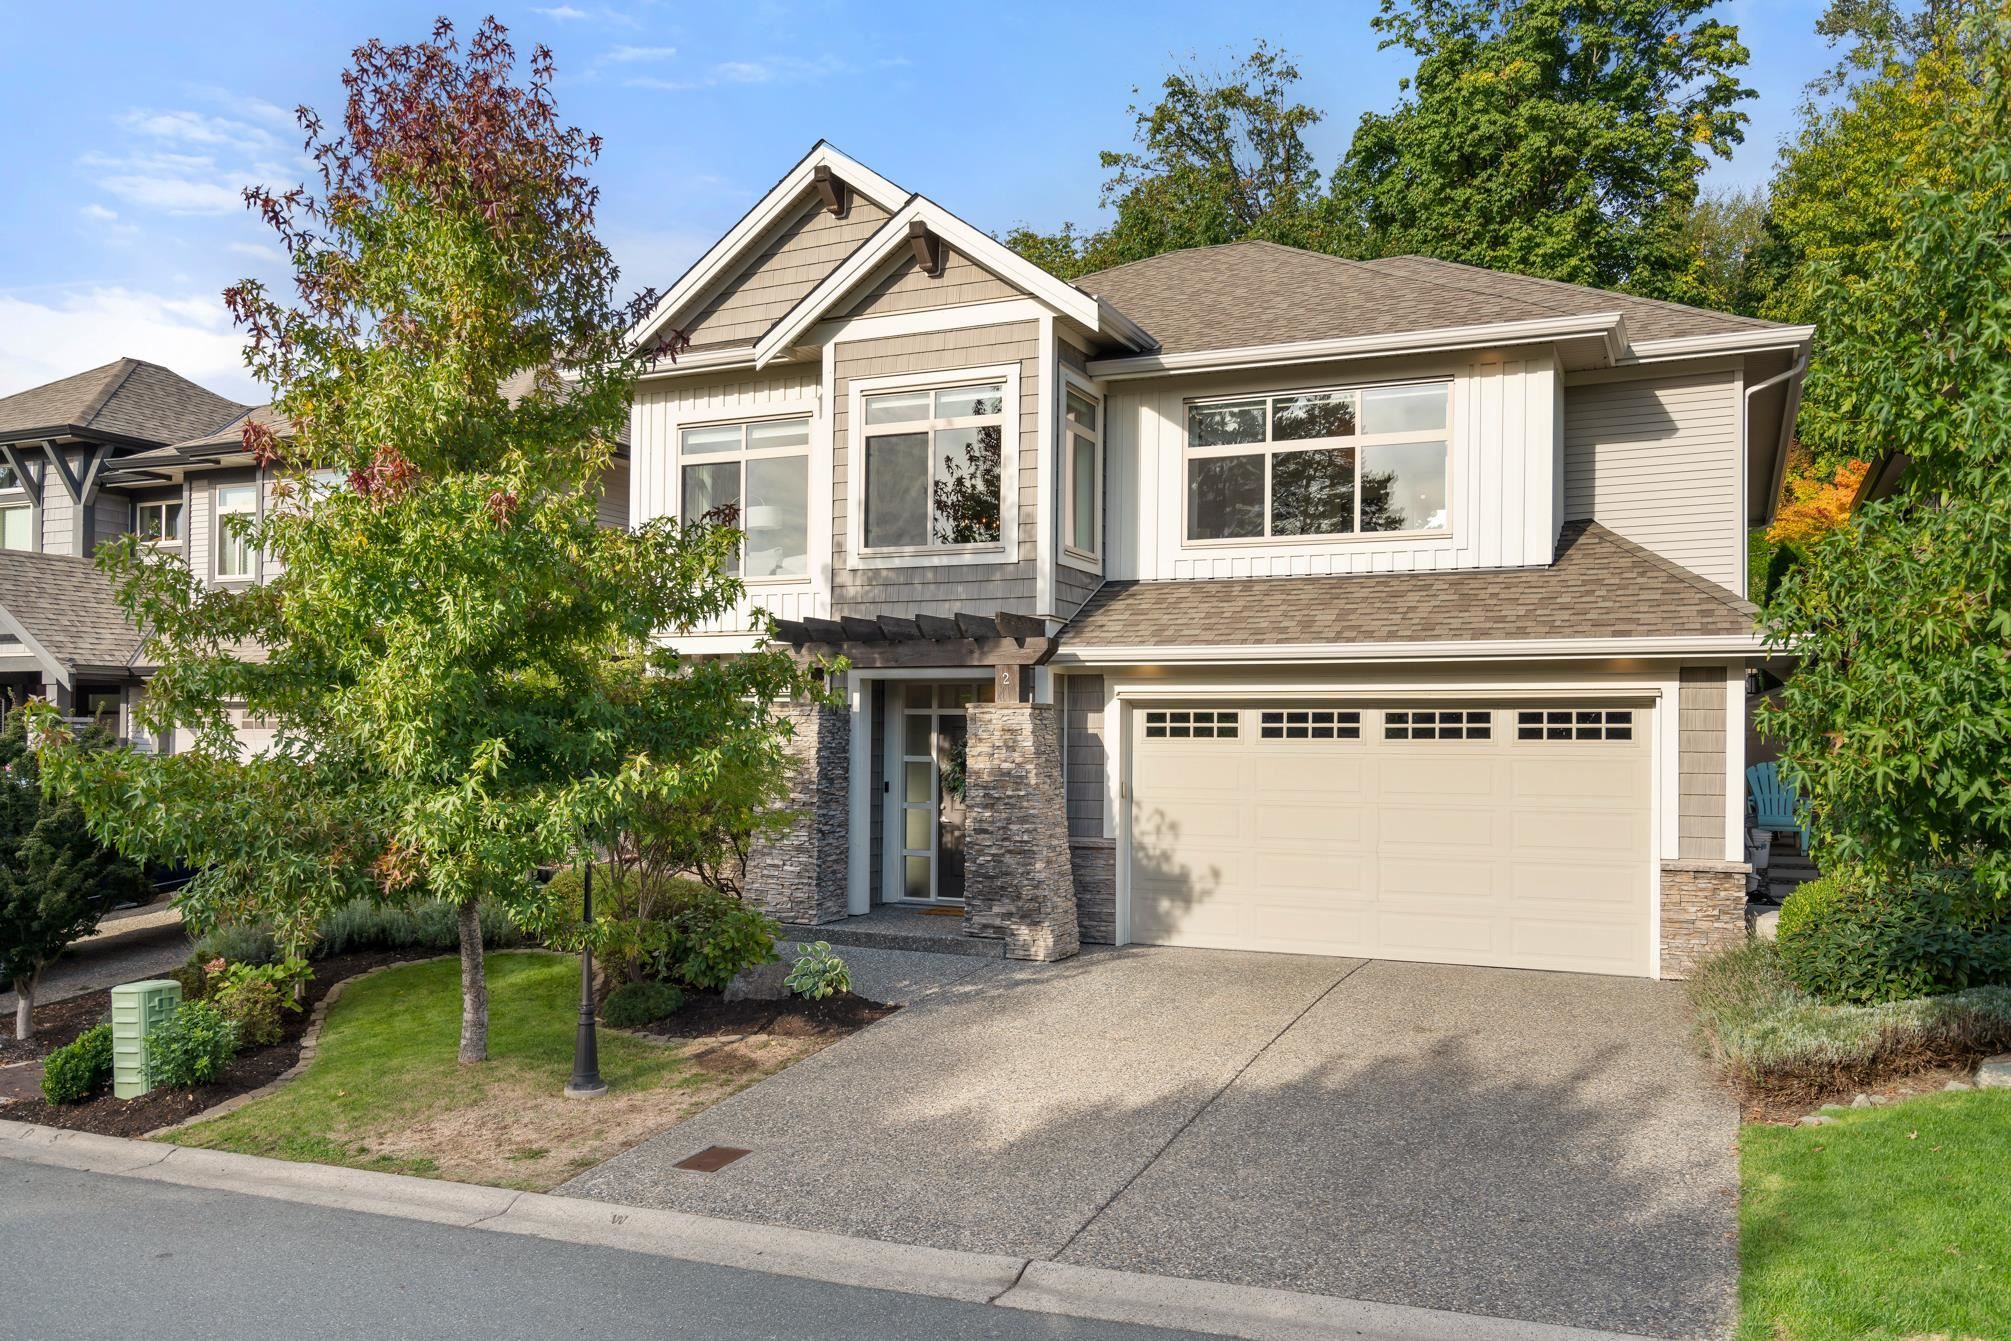 """Main Photo: #2 3457 WHATCOM Road in Abbotsford: Abbotsford East House for sale in """"The Pines"""" : MLS®# R2621261"""